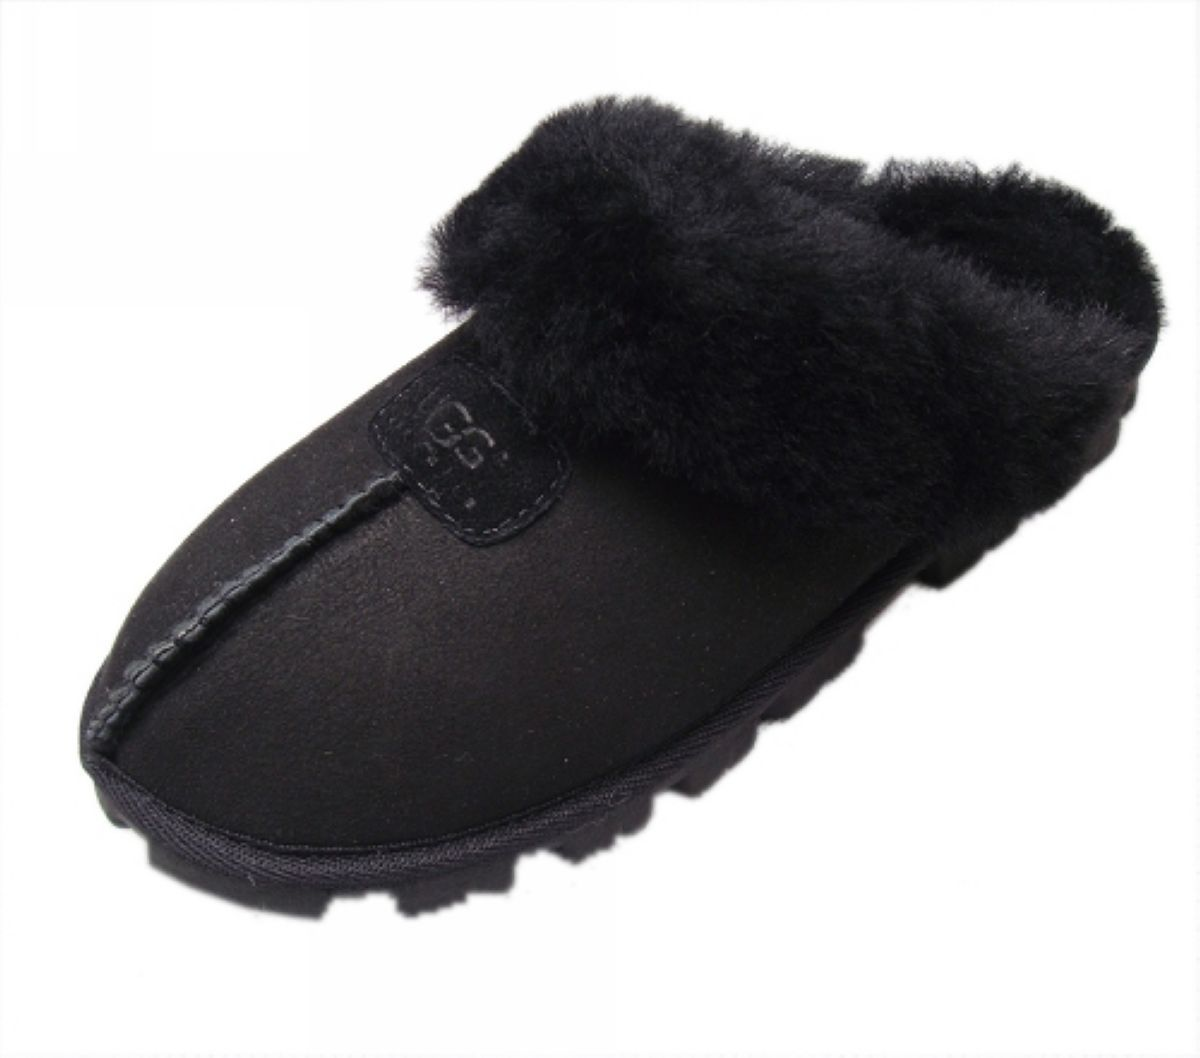 Black Pin Ugg By On Pinterest Boots Uggs F0weqzre Friday Blackfriday wxP1qn8Y